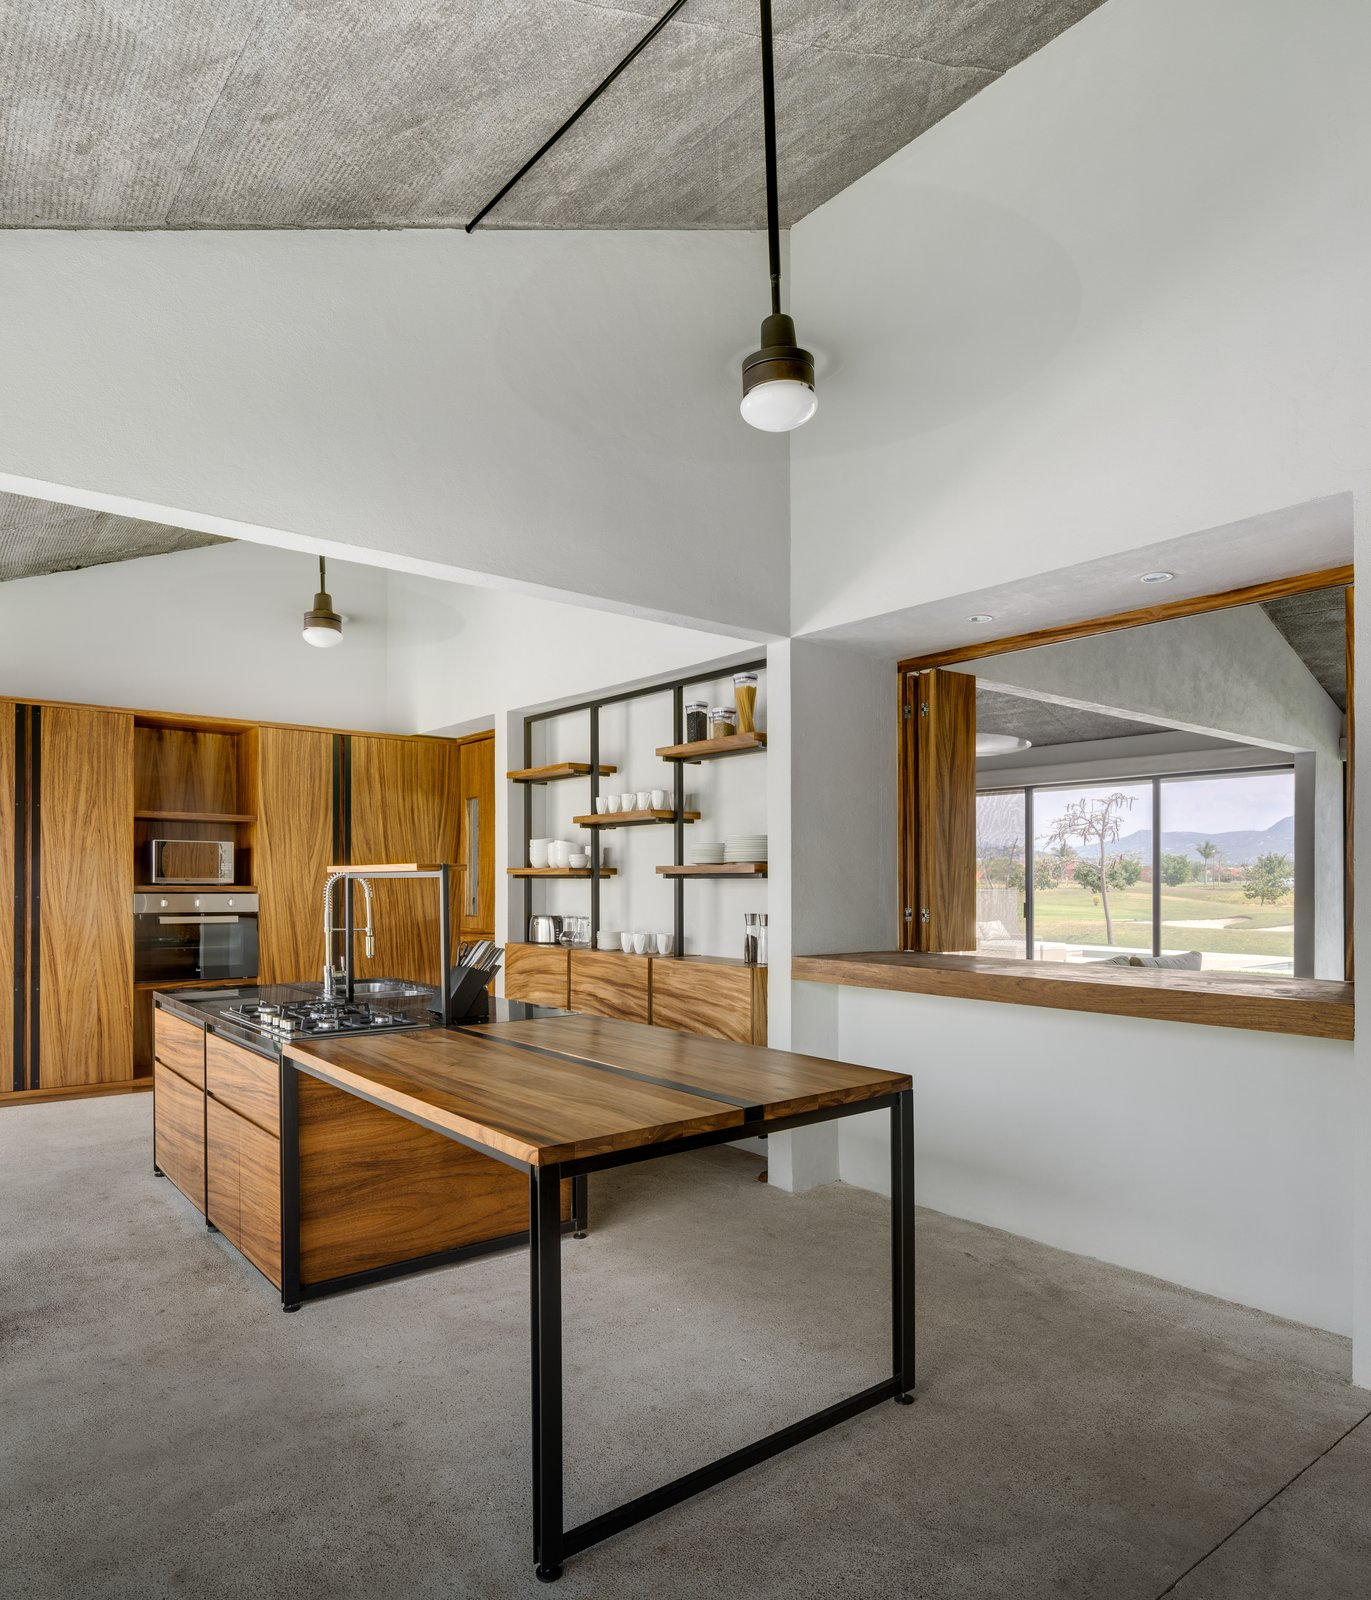 Kitchen, Granite Counter, and Wood Cabinet  Casa Paraíso Country Club by DCPP